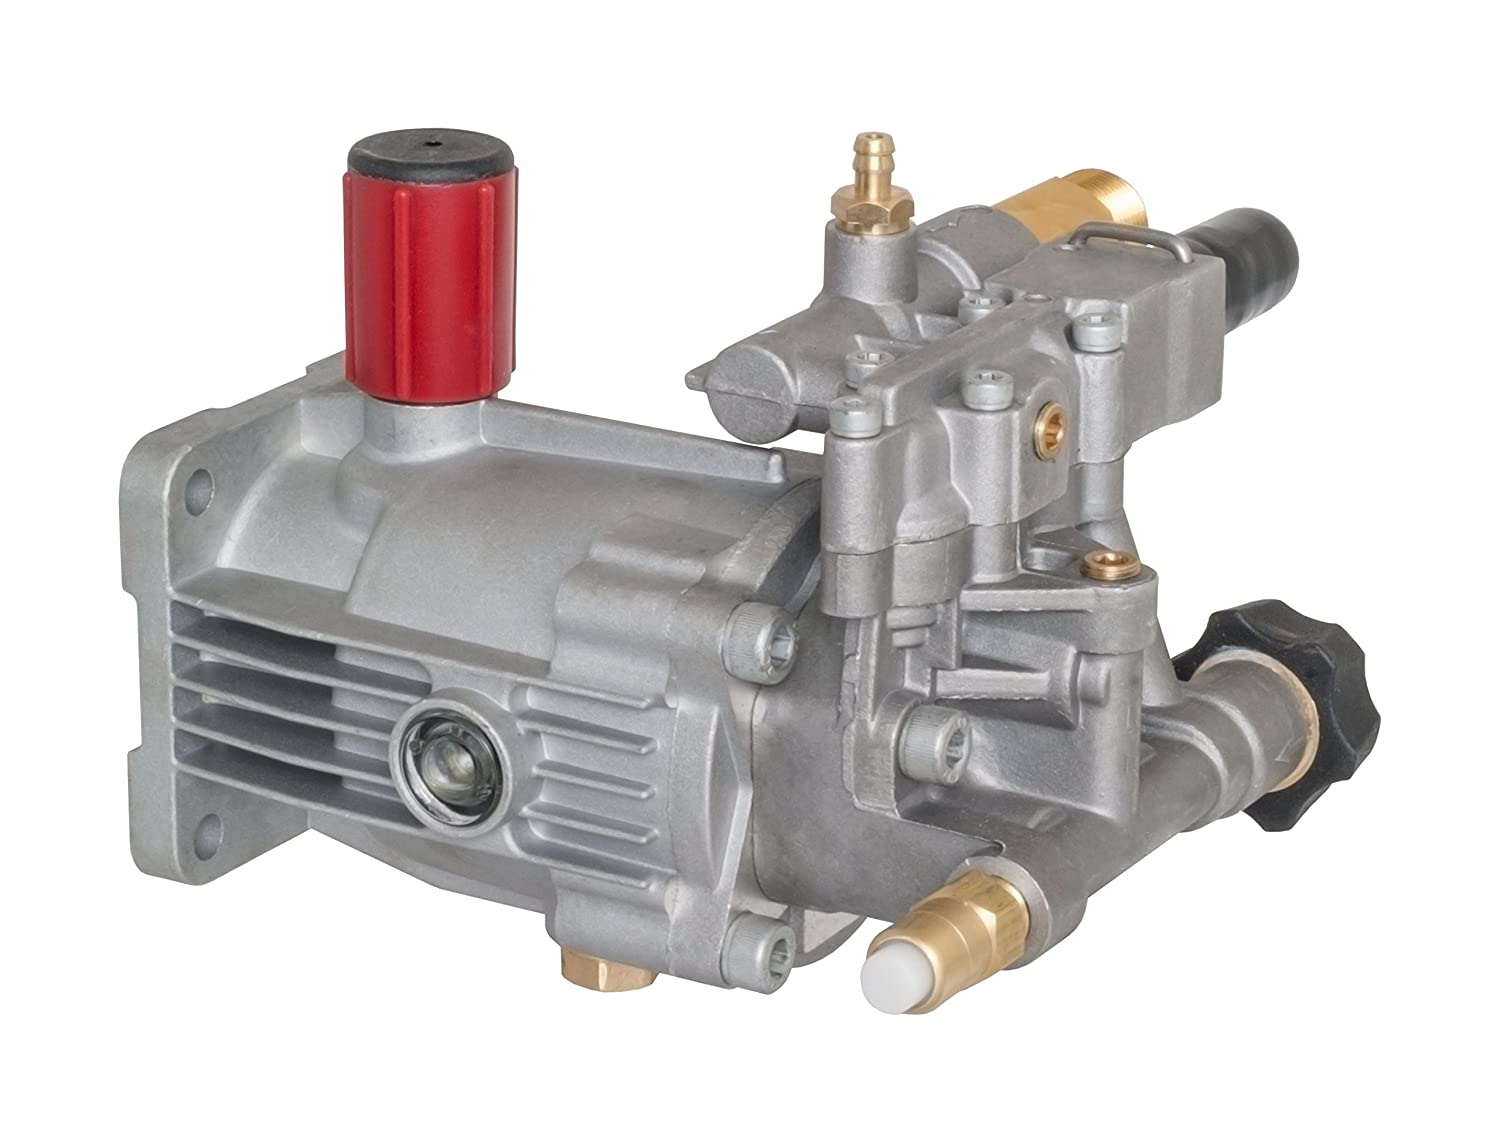 New PRESSURE WASHER PUMP Replace D28744 A14292 XC2600 EXHA2425 EXCELL DEVILBISS